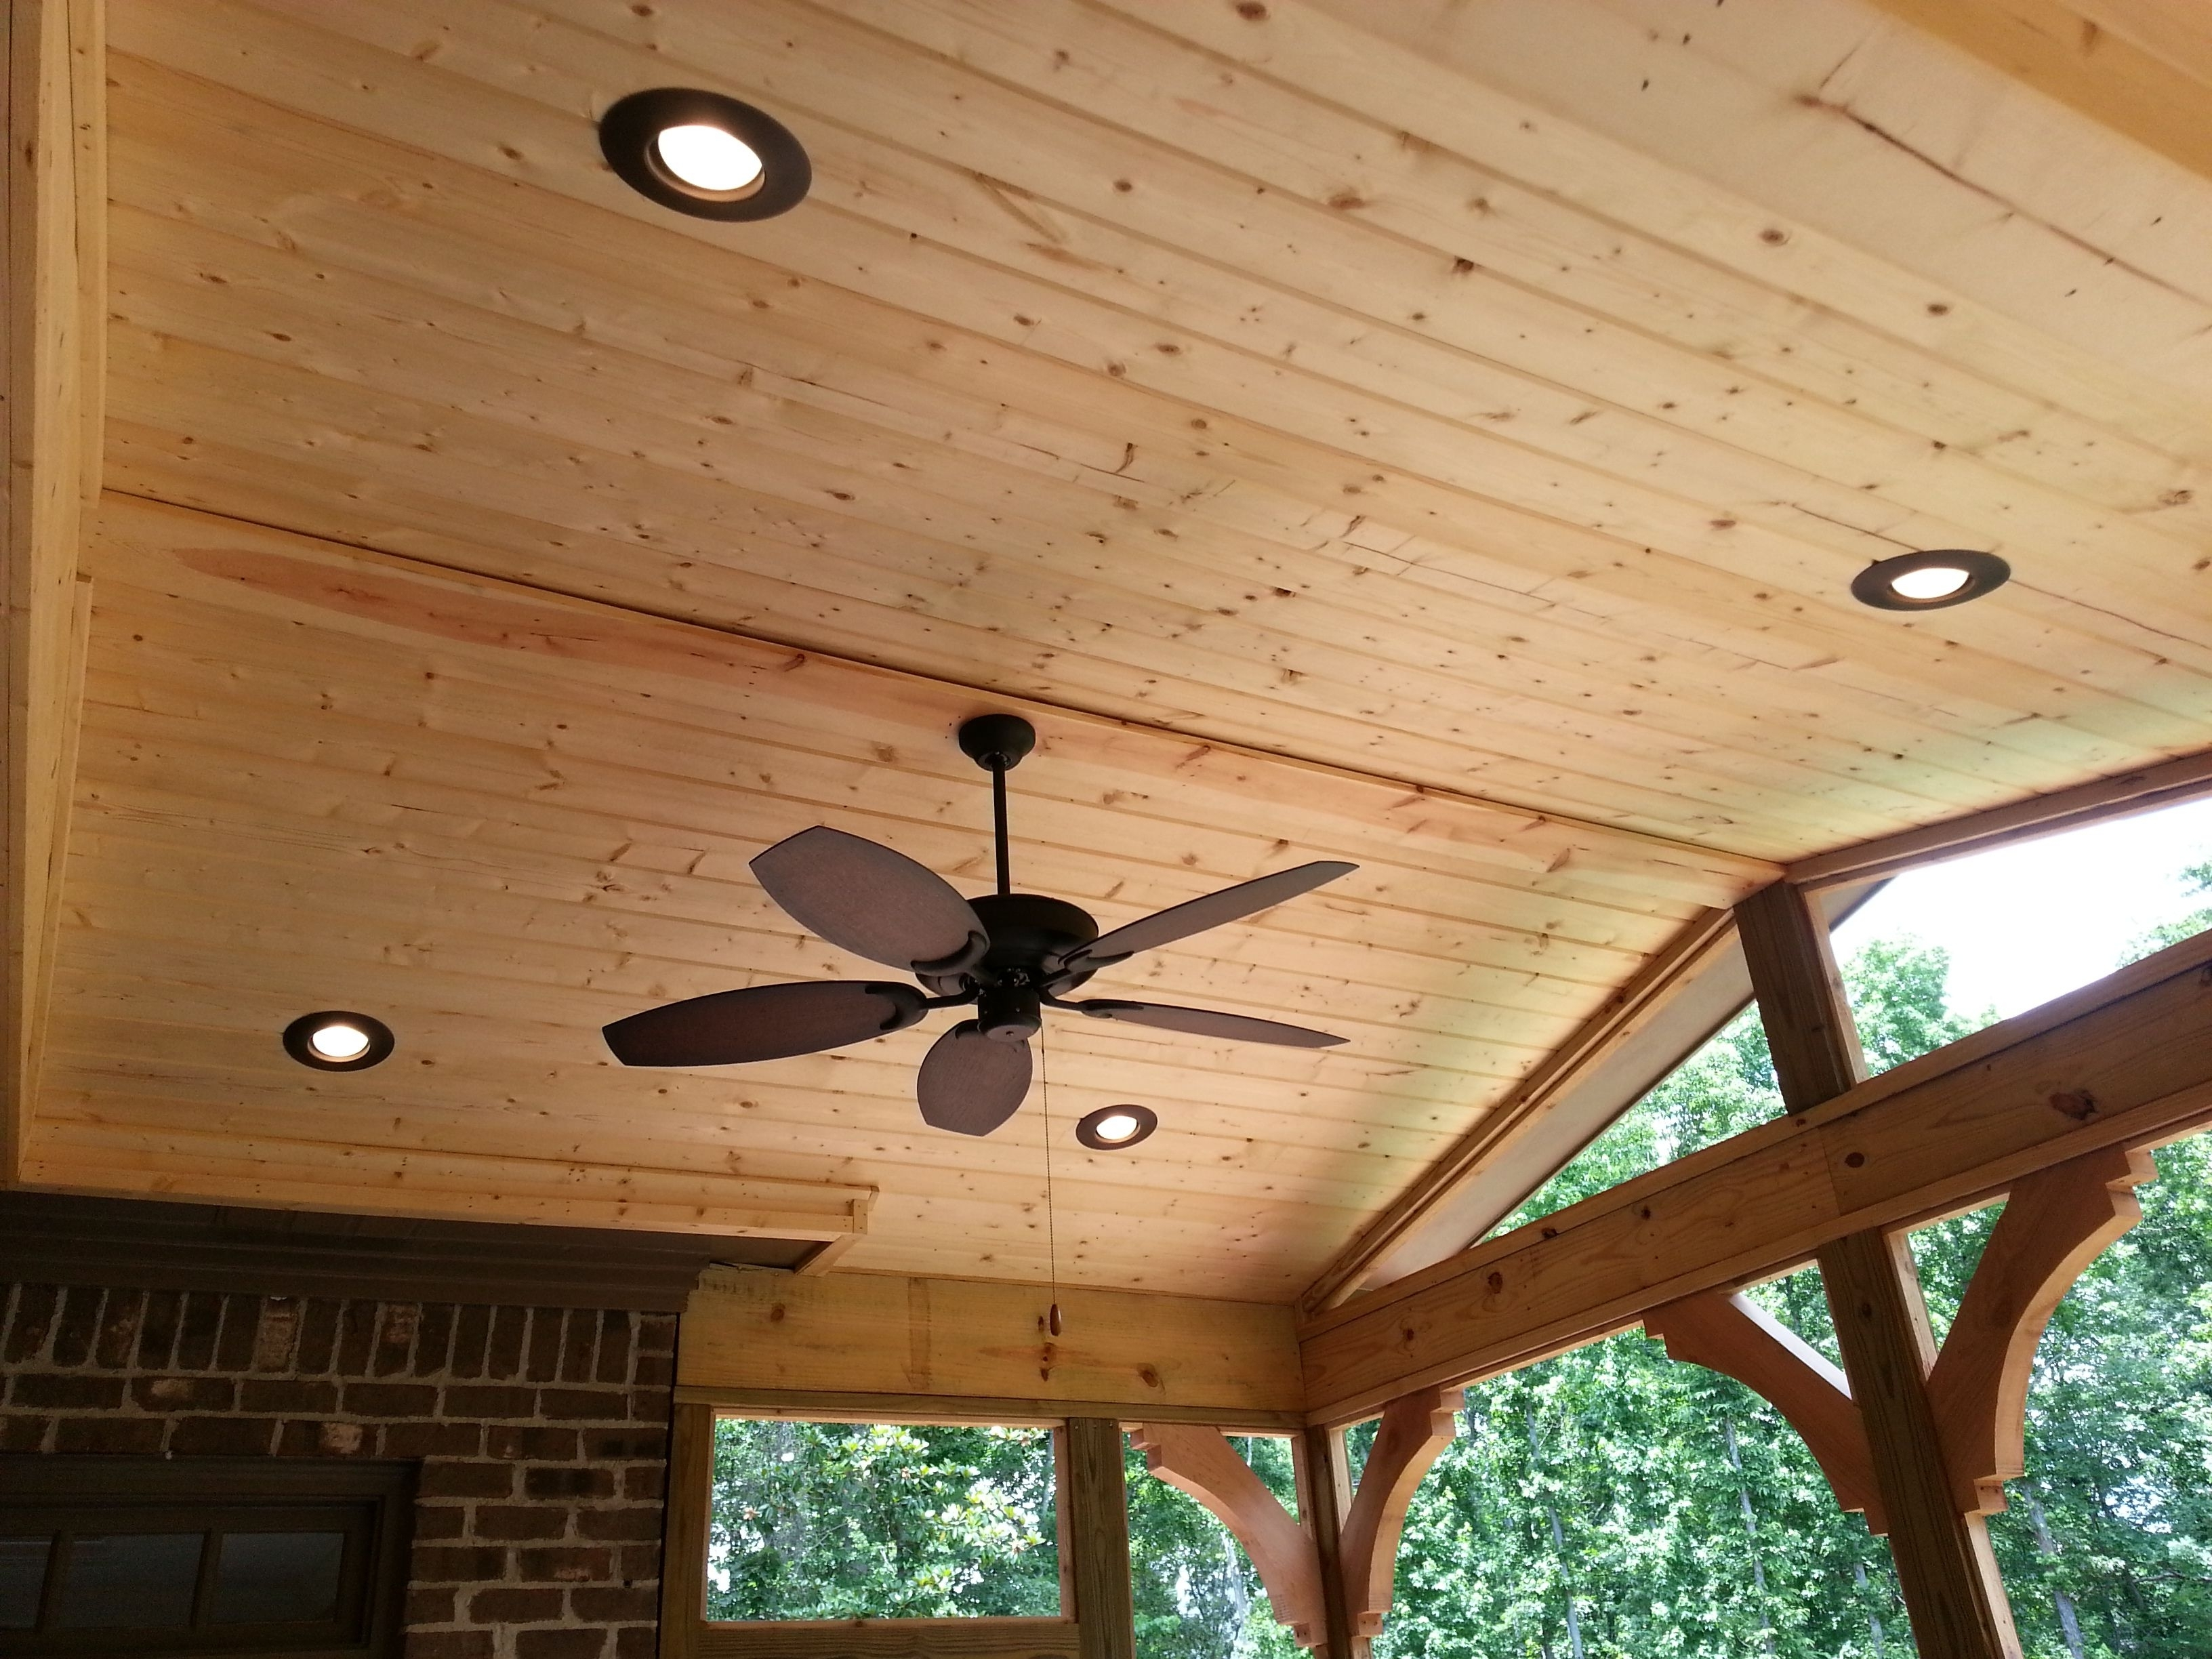 Outdoor Ceiling Fans For Screened Porches Pertaining To 2018 Finished Ceiling With Ceiling Fan And Can Lights – Design Ideas (Gallery 20 of 20)